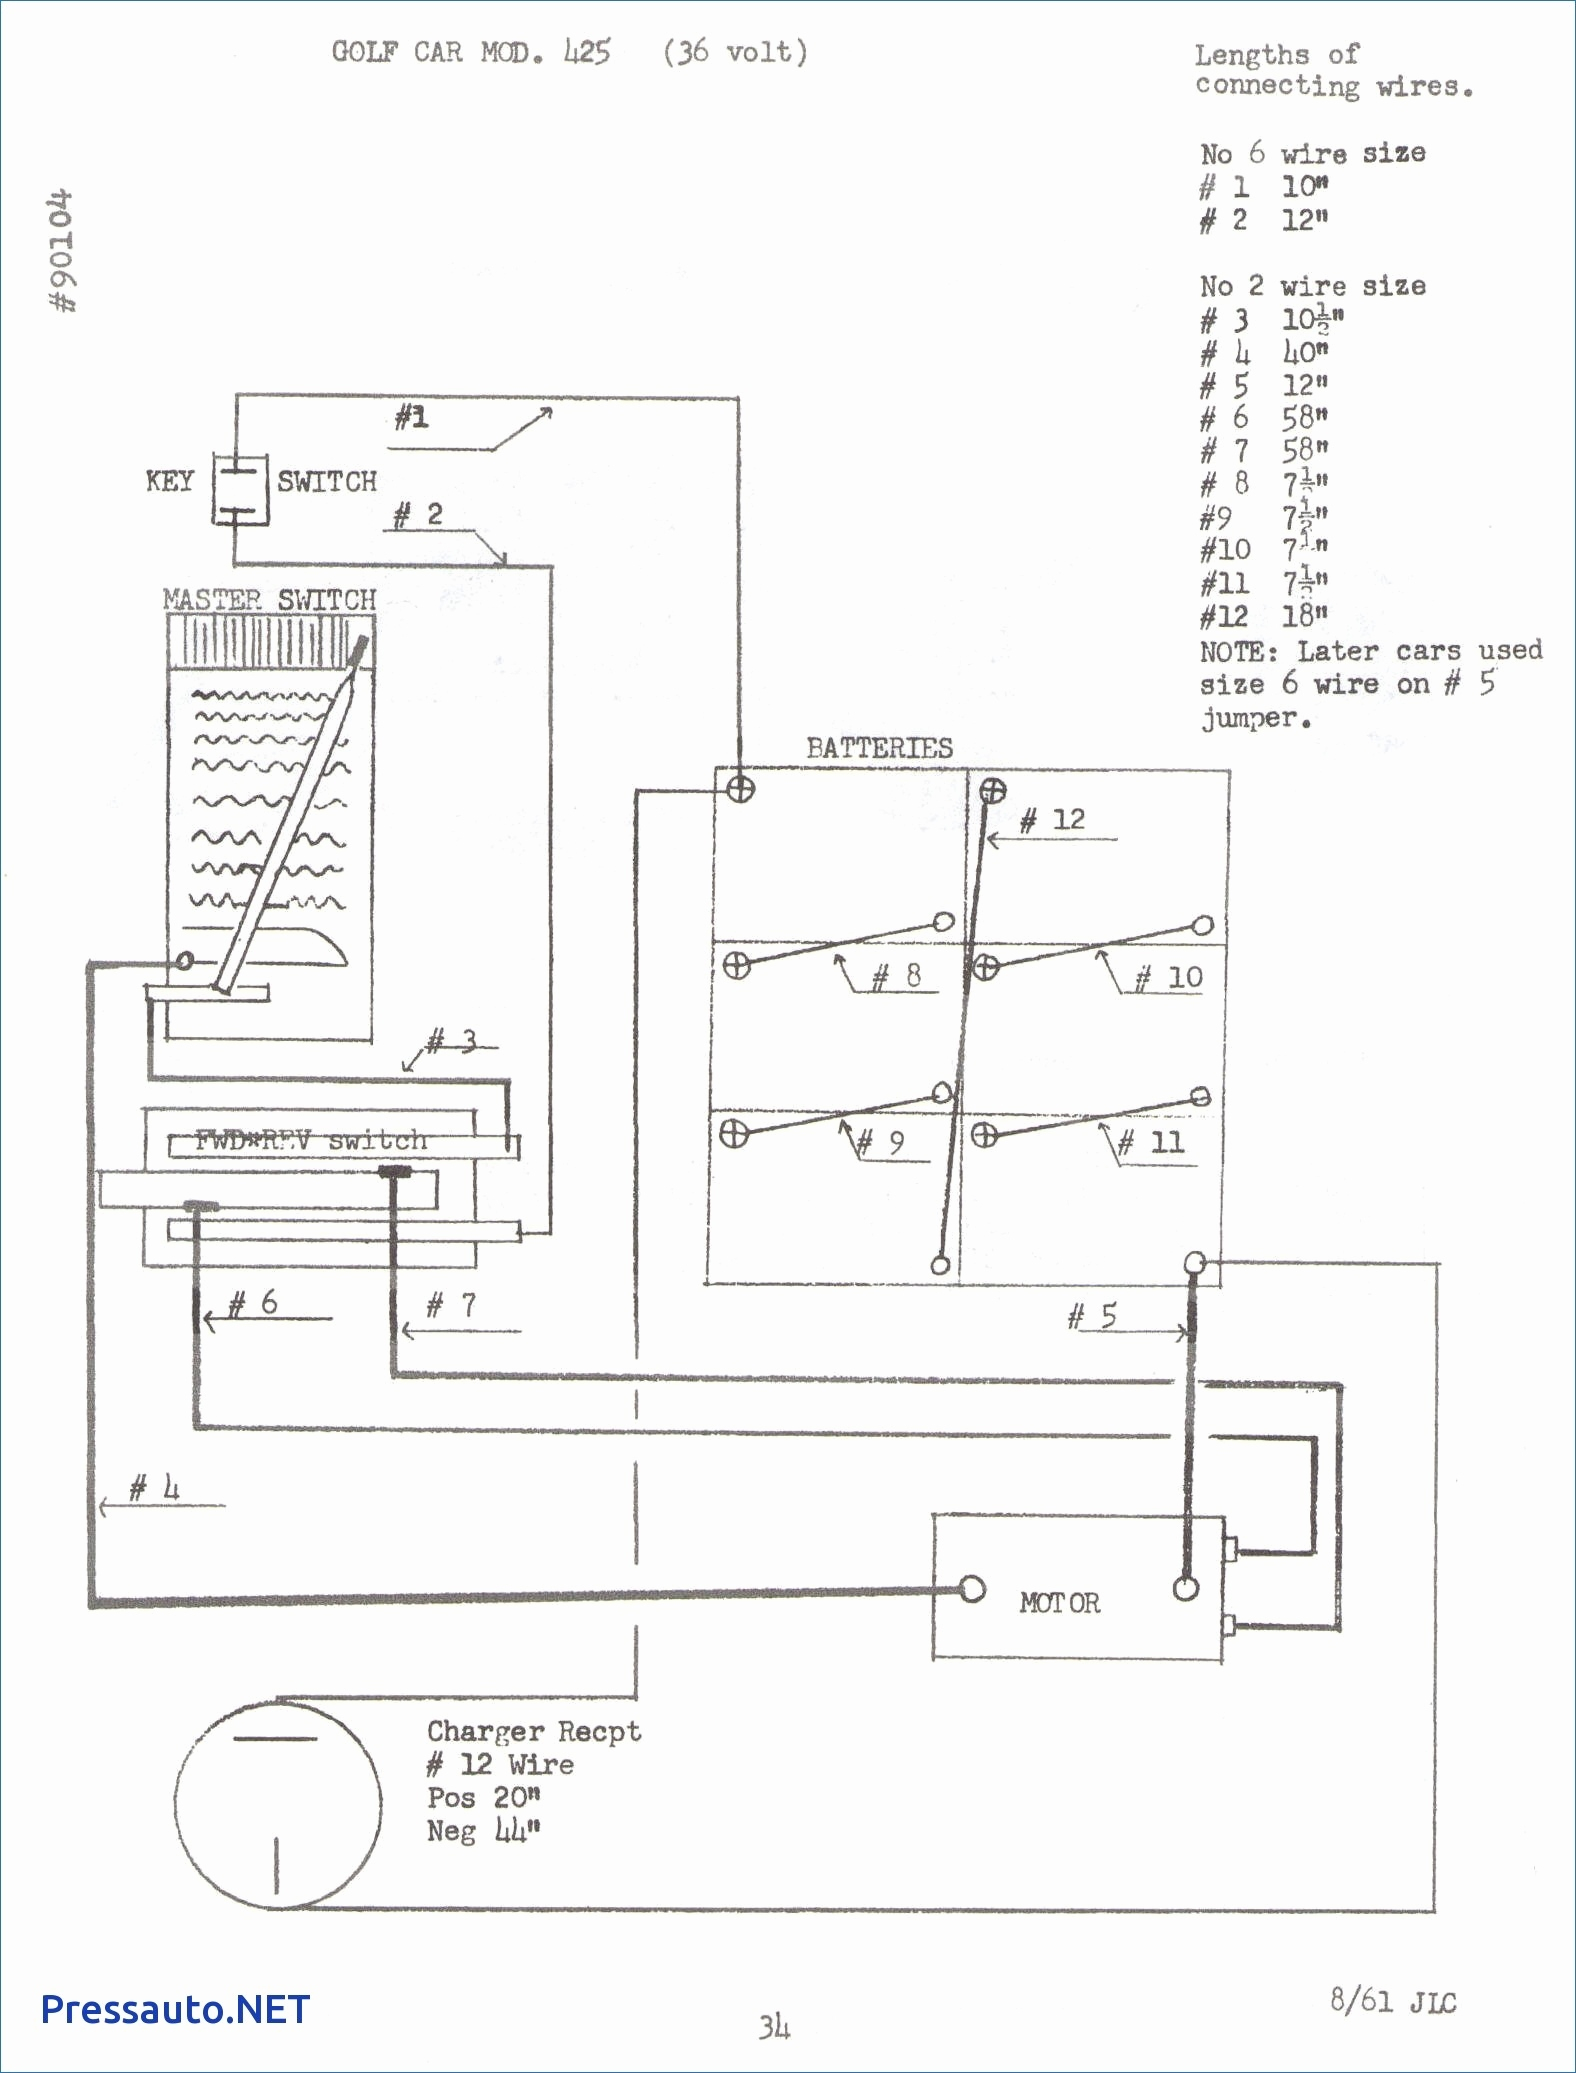 Wiring Diagram Pictures Detail: Name: taylor dunn 36 volt wiring diagram ...